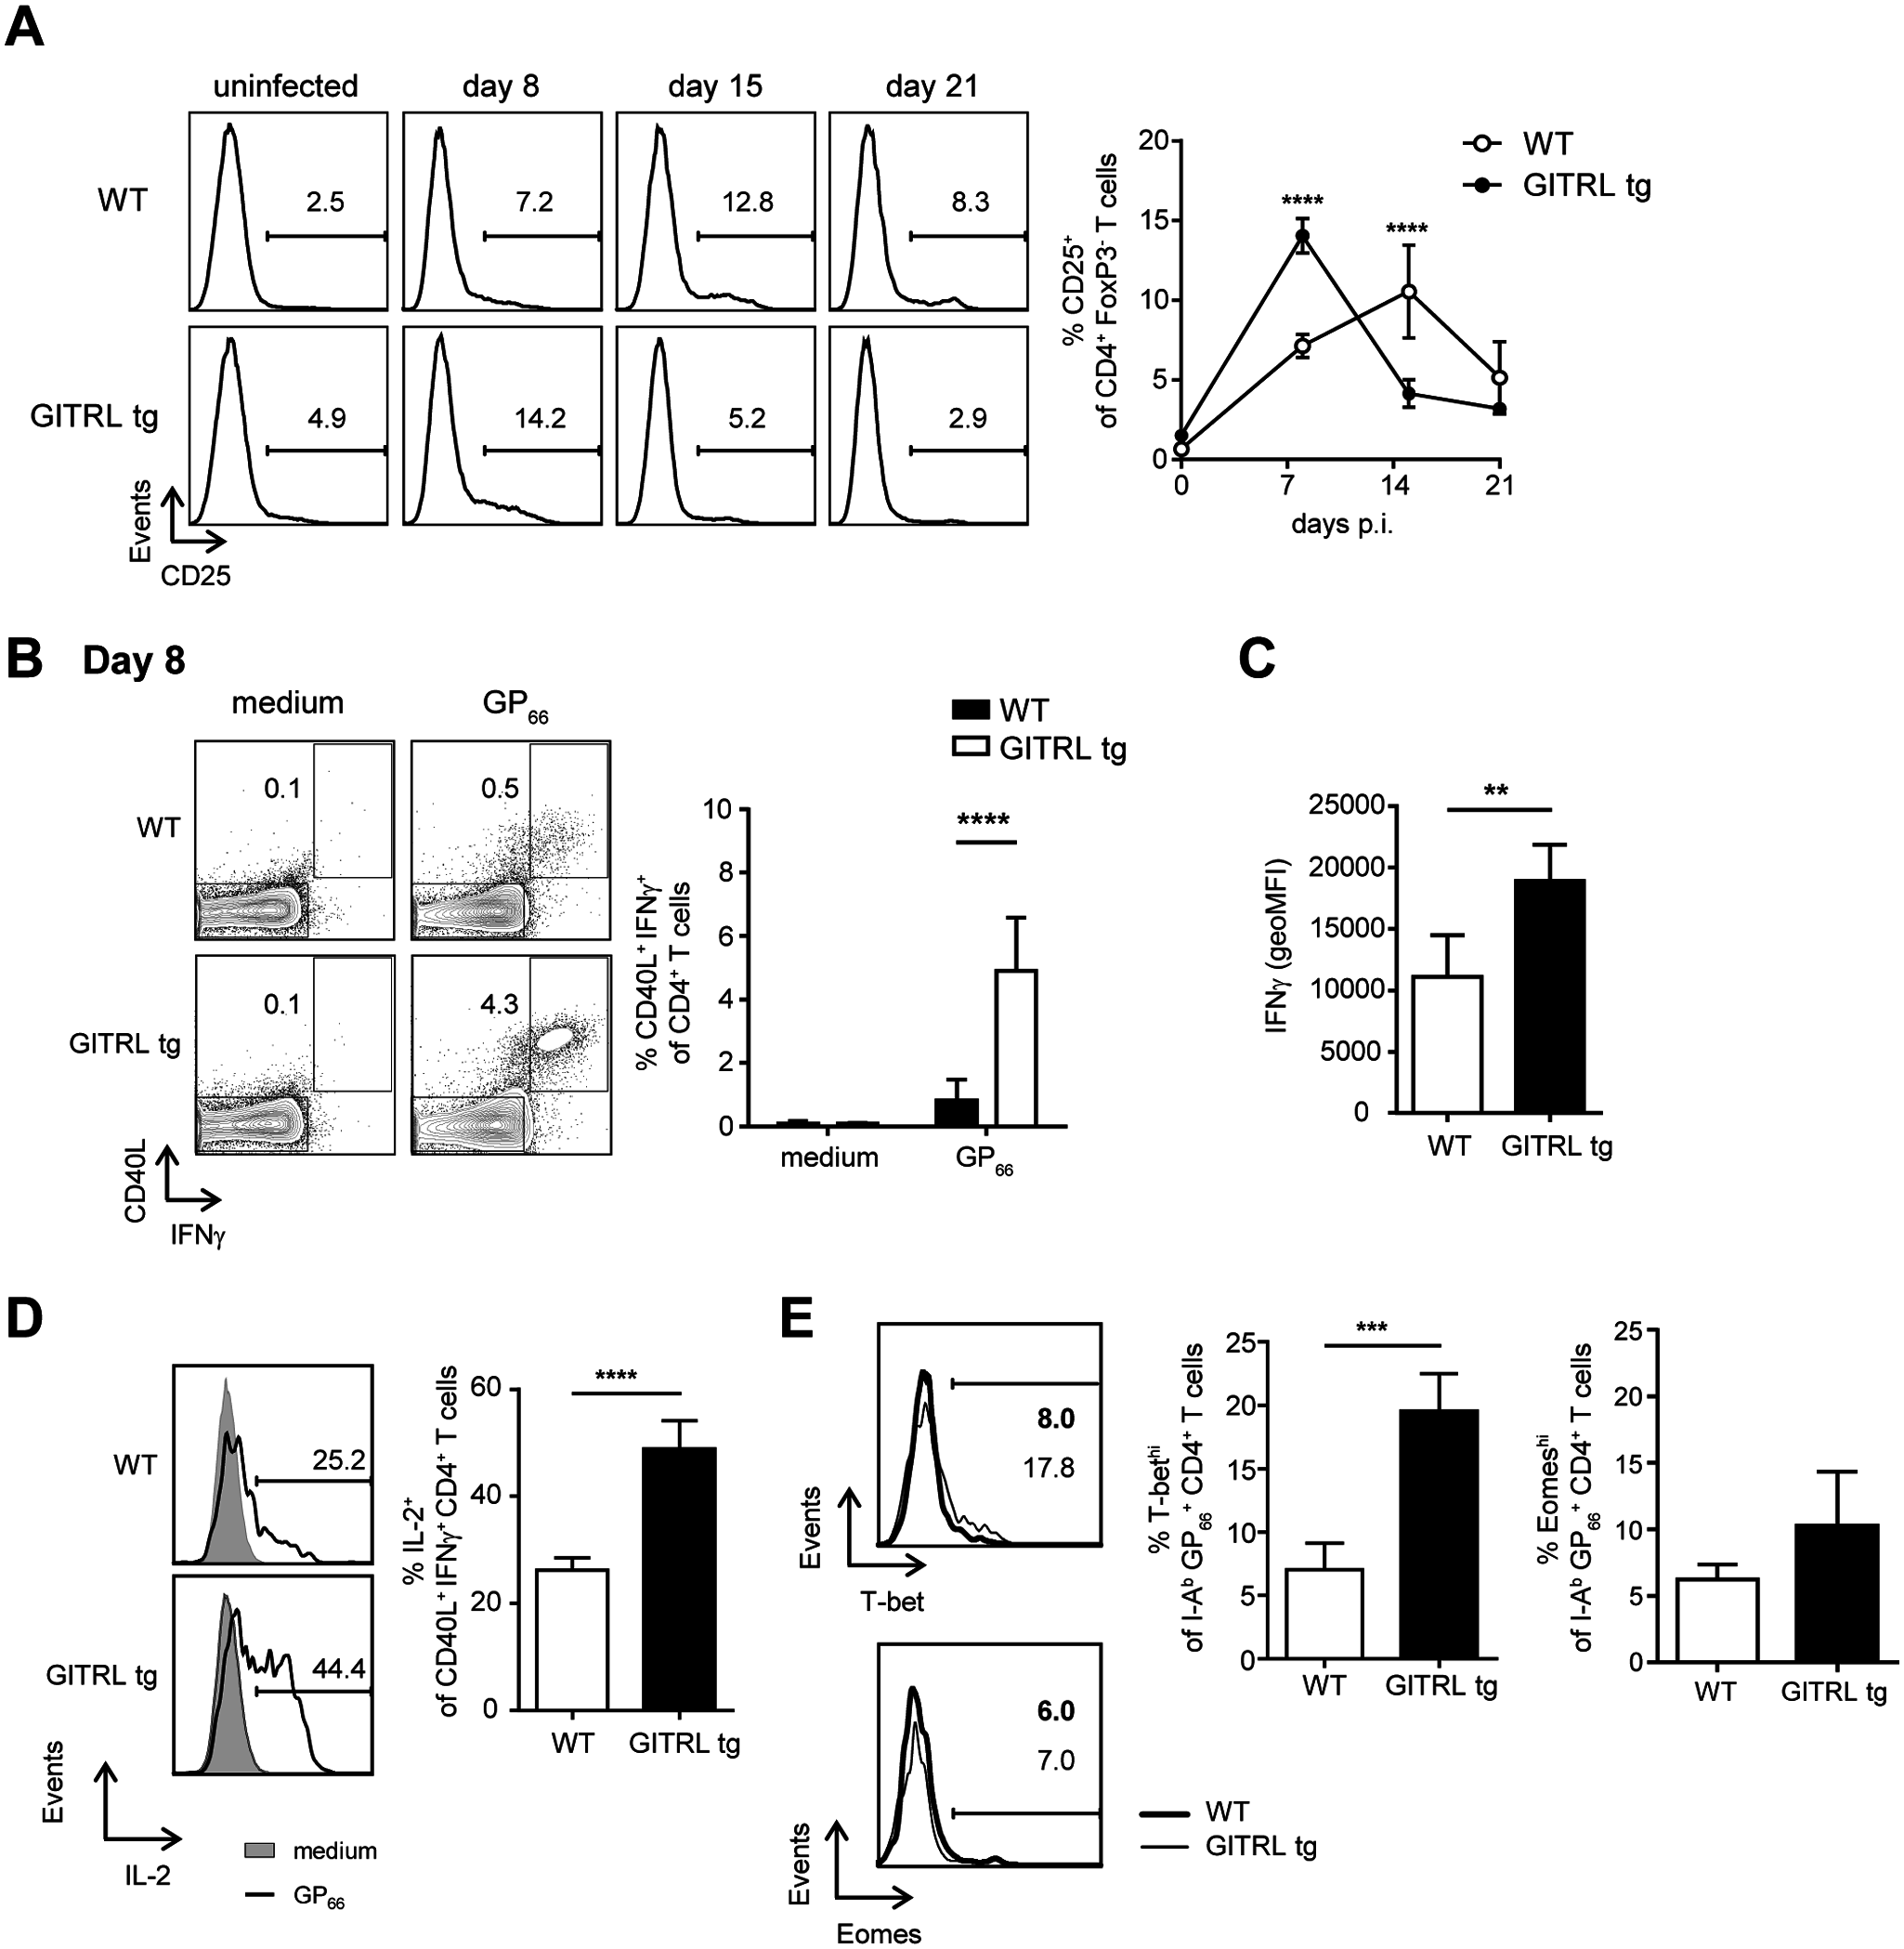 CD4<sup>+</sup> T cells from GITRL tg mice are activated earlier and are more polyfunctional during chronic LCMV infection.